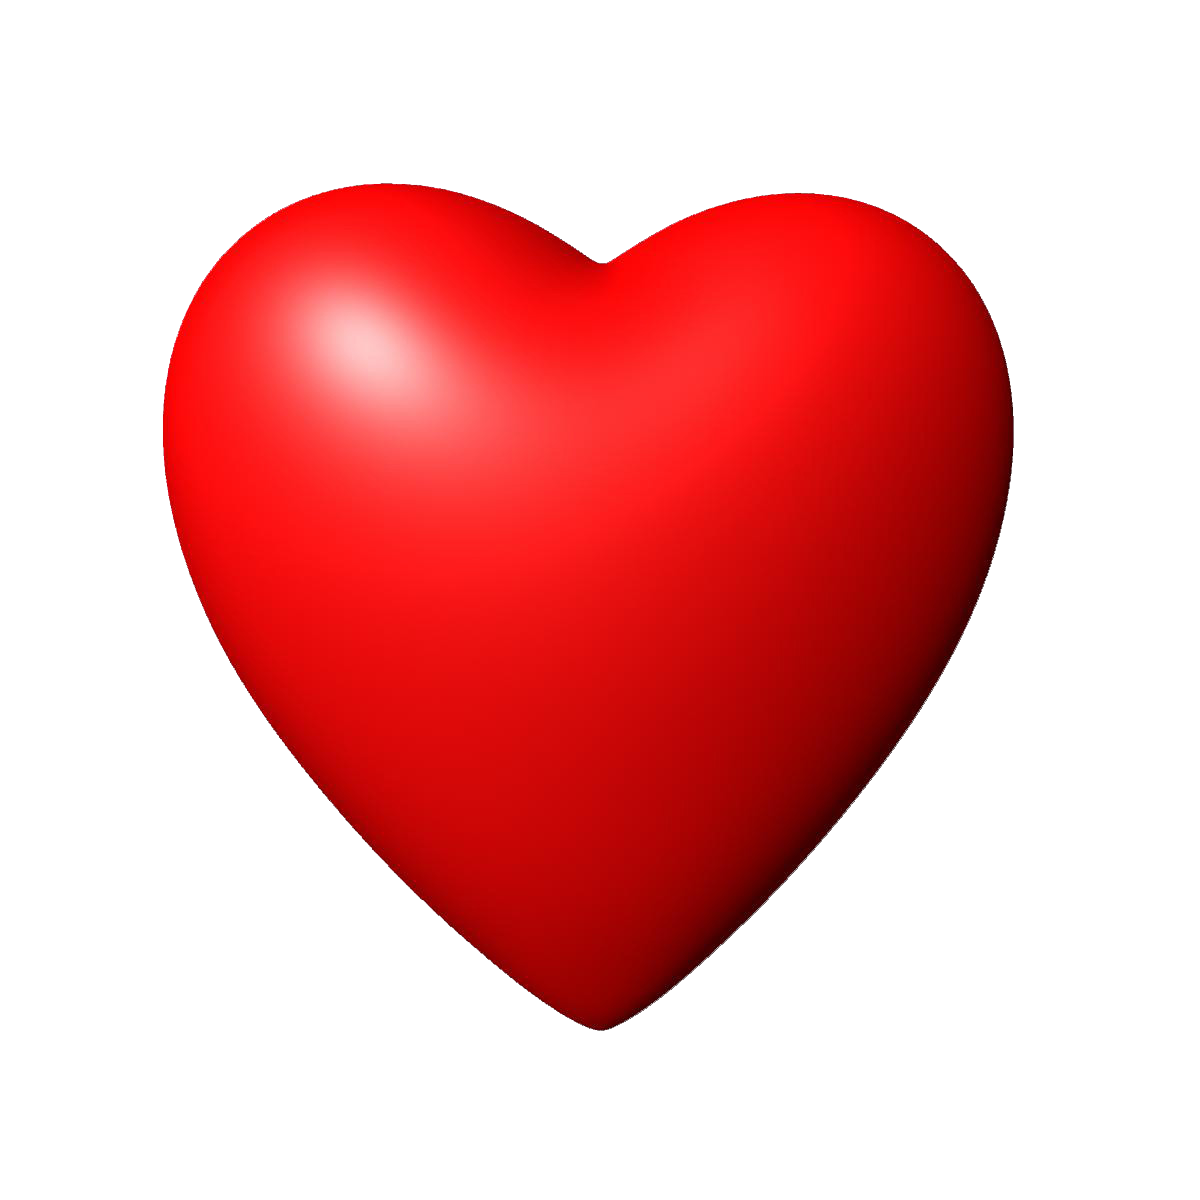 d heart image. Red hearts png